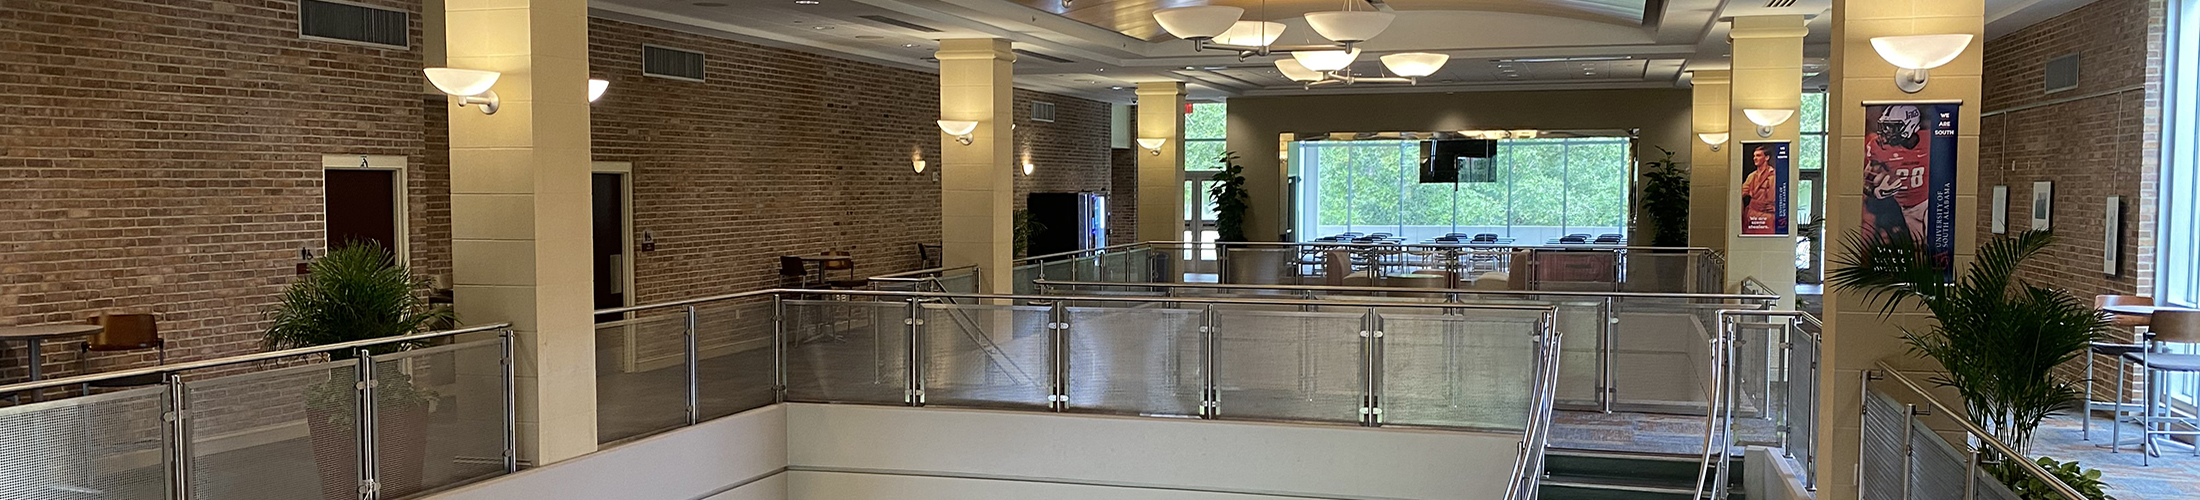 Student Center center with stairs and seating.